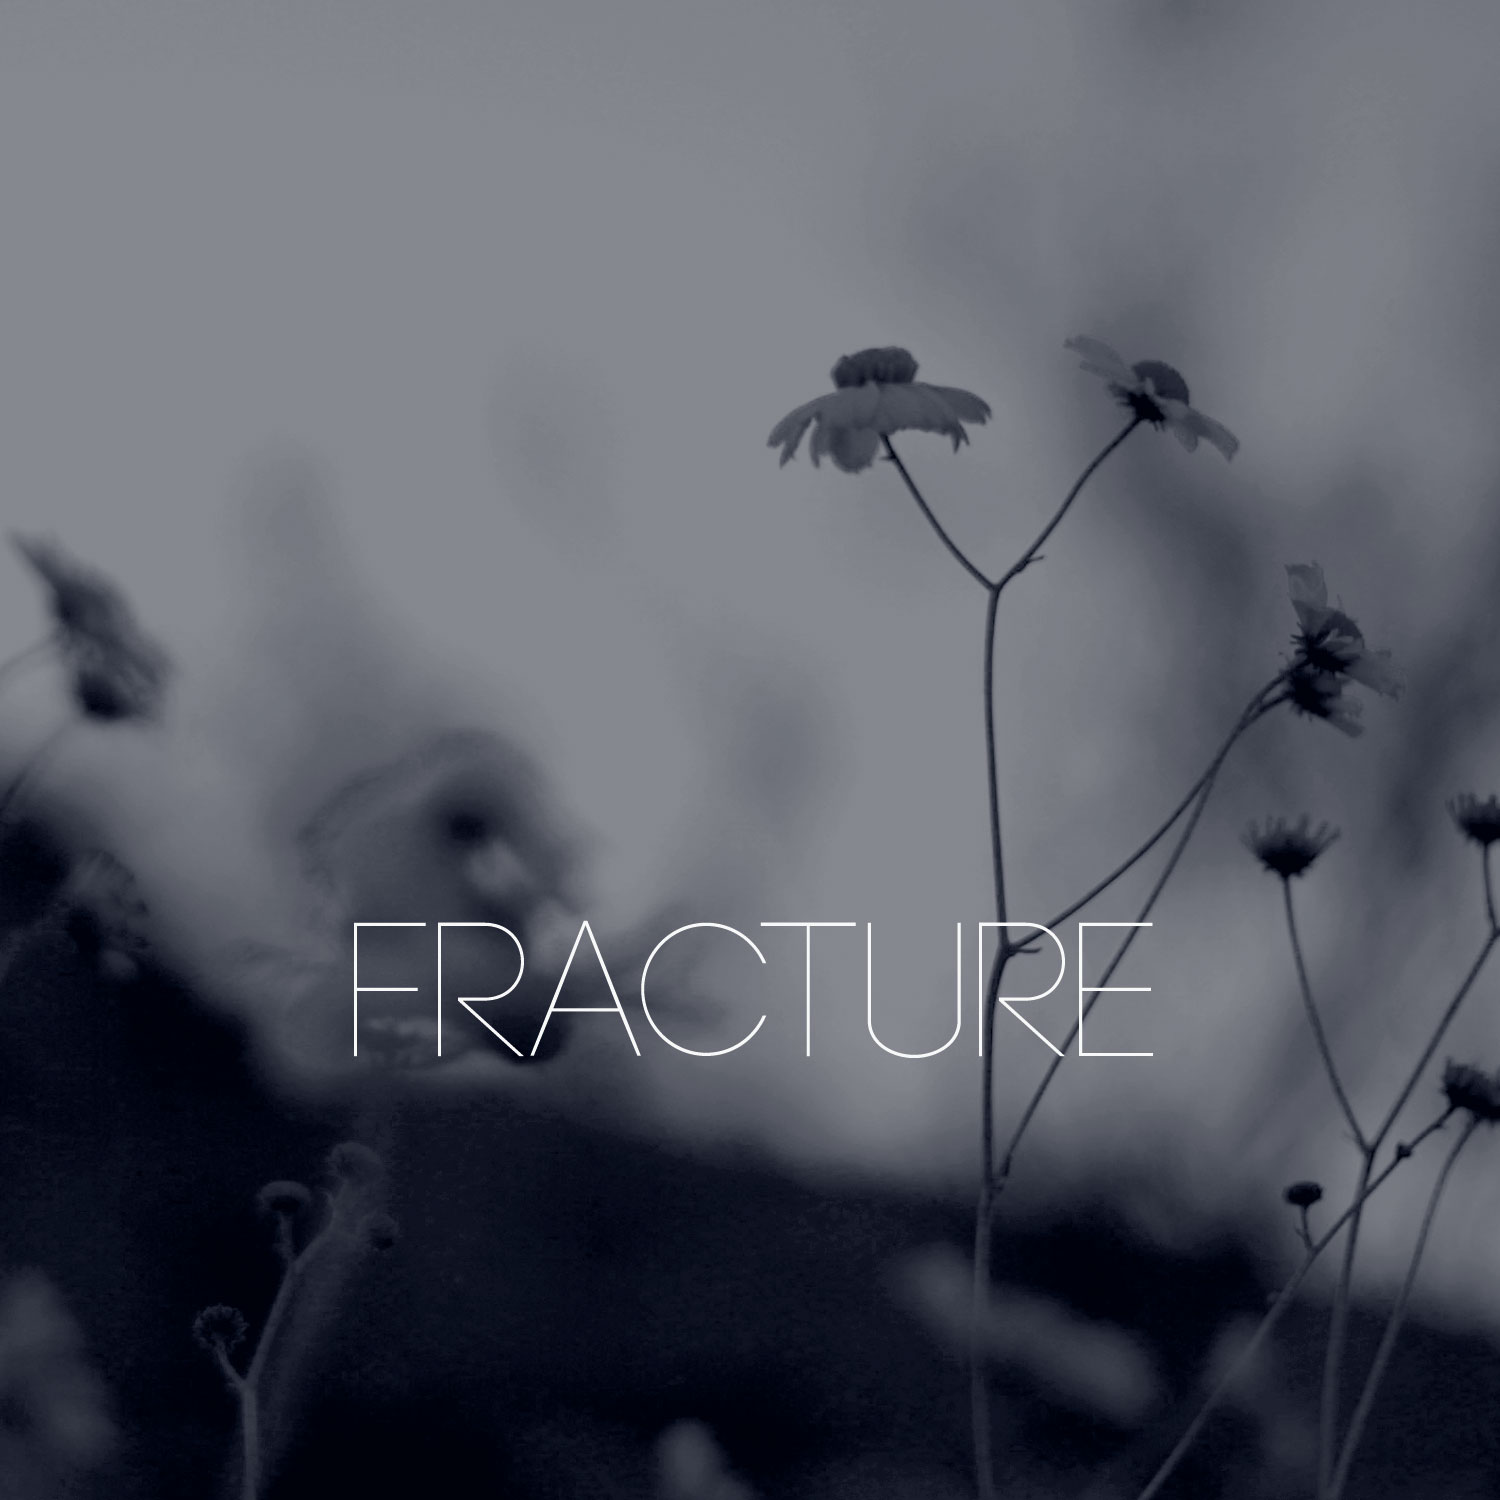 Row Boat and Apta - Fracture - Cover Design by Daniel Tuttle